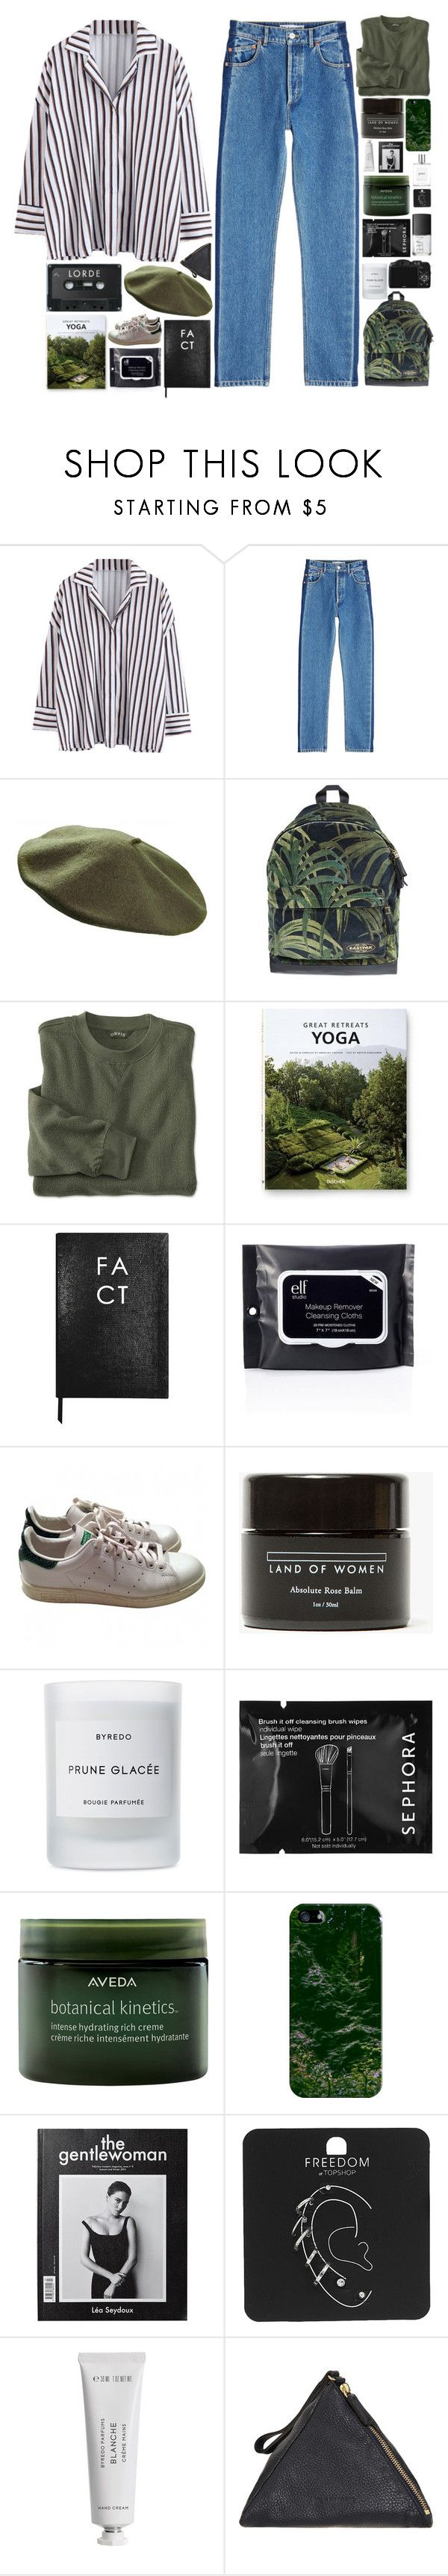 """We were moving"" by akp123 ❤ liked on Polyvore featuring Balenciaga, Eastpak, Taschen, Sloane Stationery, adidas, Land of Women, Byredo, CO, Sephora Collection and NARS Cosmetics"